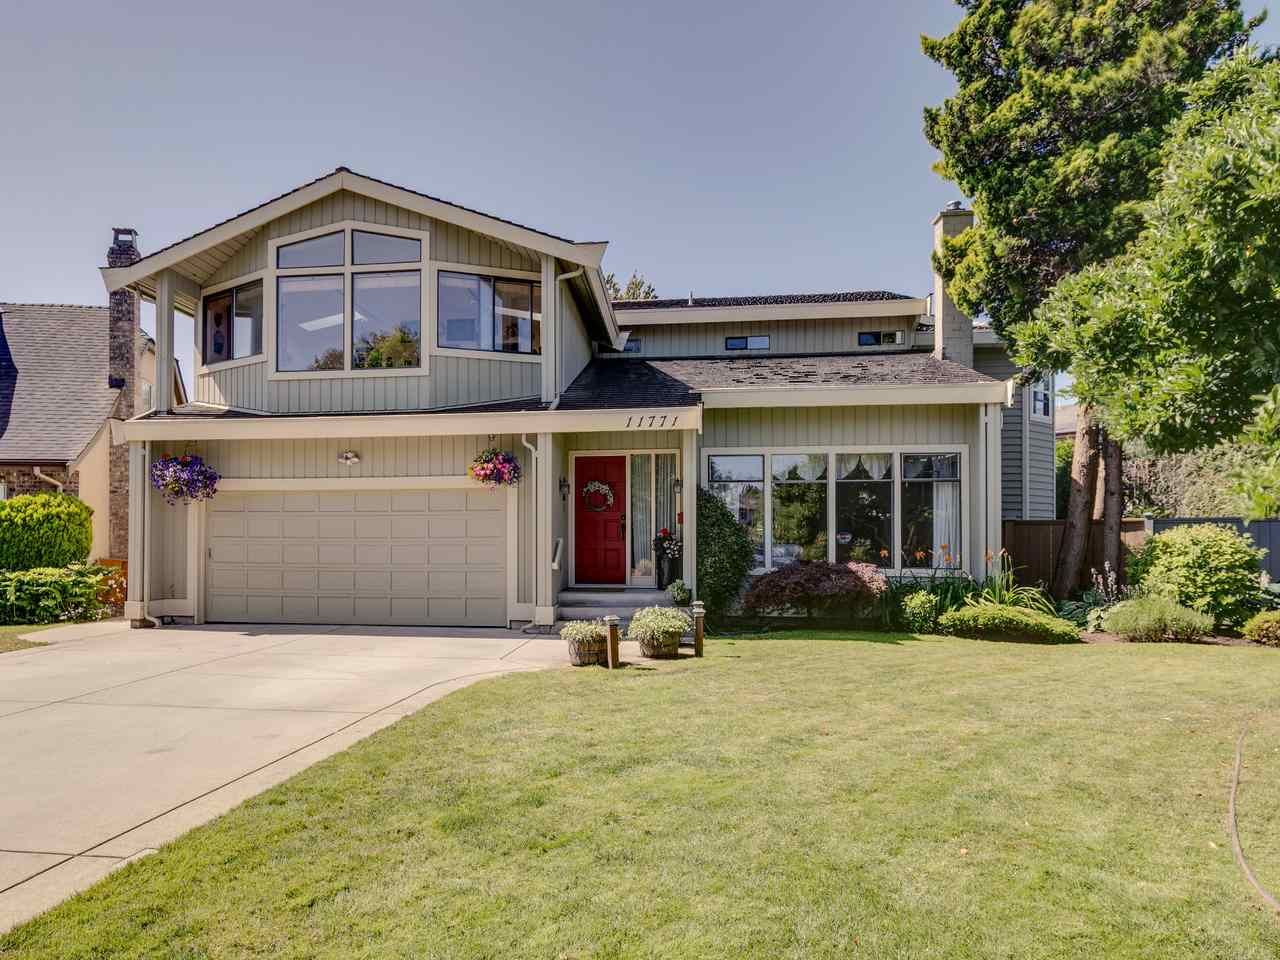 """Main Photo: 11771 PLOVER Drive in Richmond: Westwind House for sale in """"WESTWIND"""" : MLS®# R2484698"""